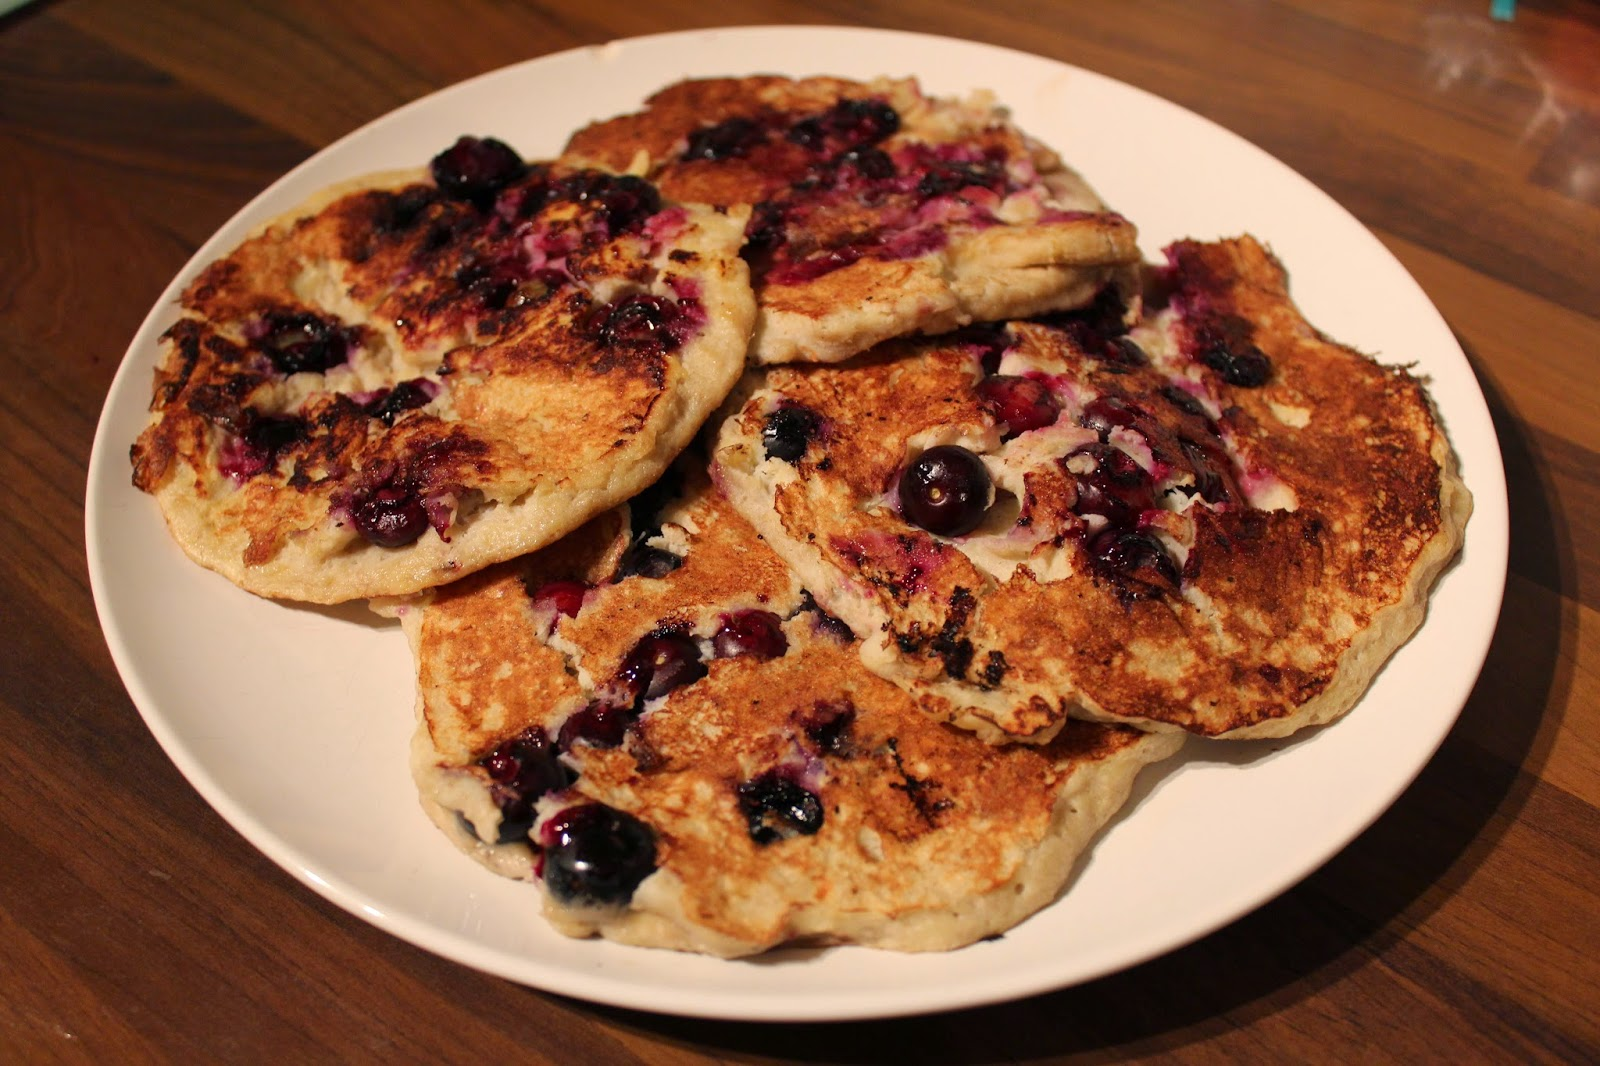 pancakes blueberry blueberries banana carb free guilt free recipe making cooking food snacks lbloggers lifestyle bbloggers beauty fbloggers fashion instagood instagram food kitchen fruit healthy advice